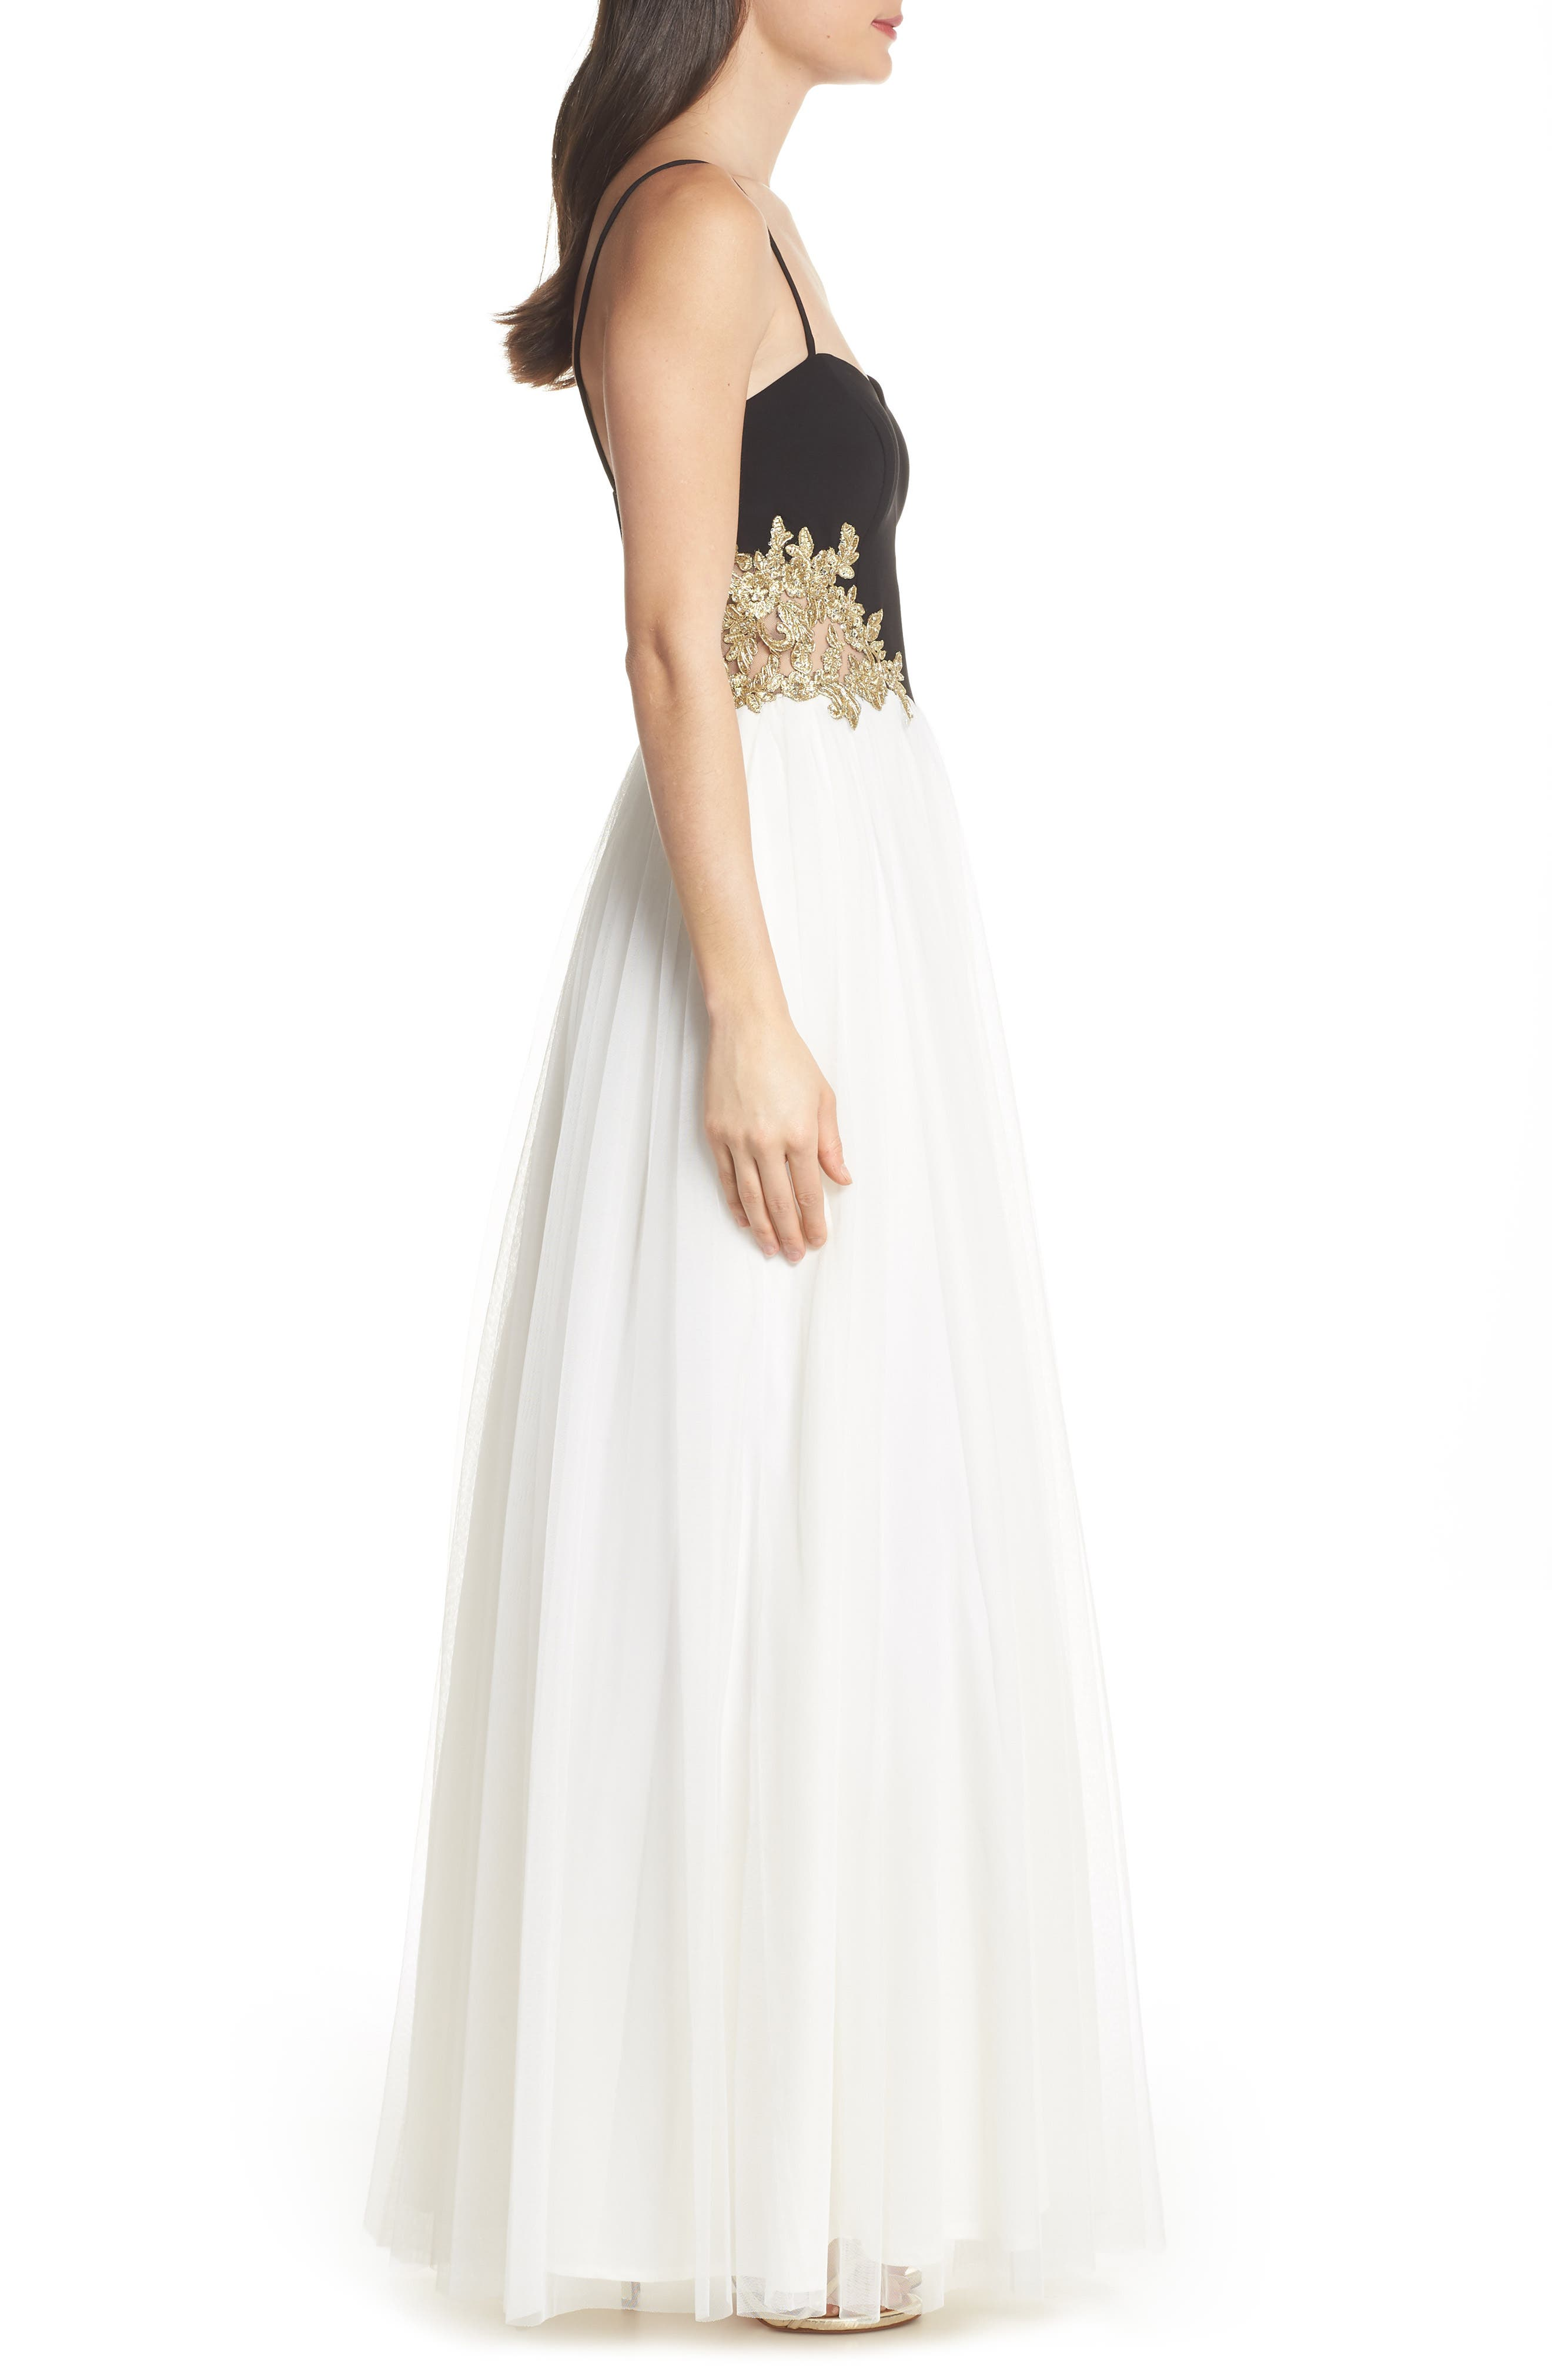 Blondie Nights Embellished Tulle Gown,                             Alternate thumbnail 3, color,                             Black/ Ivory/ Gold